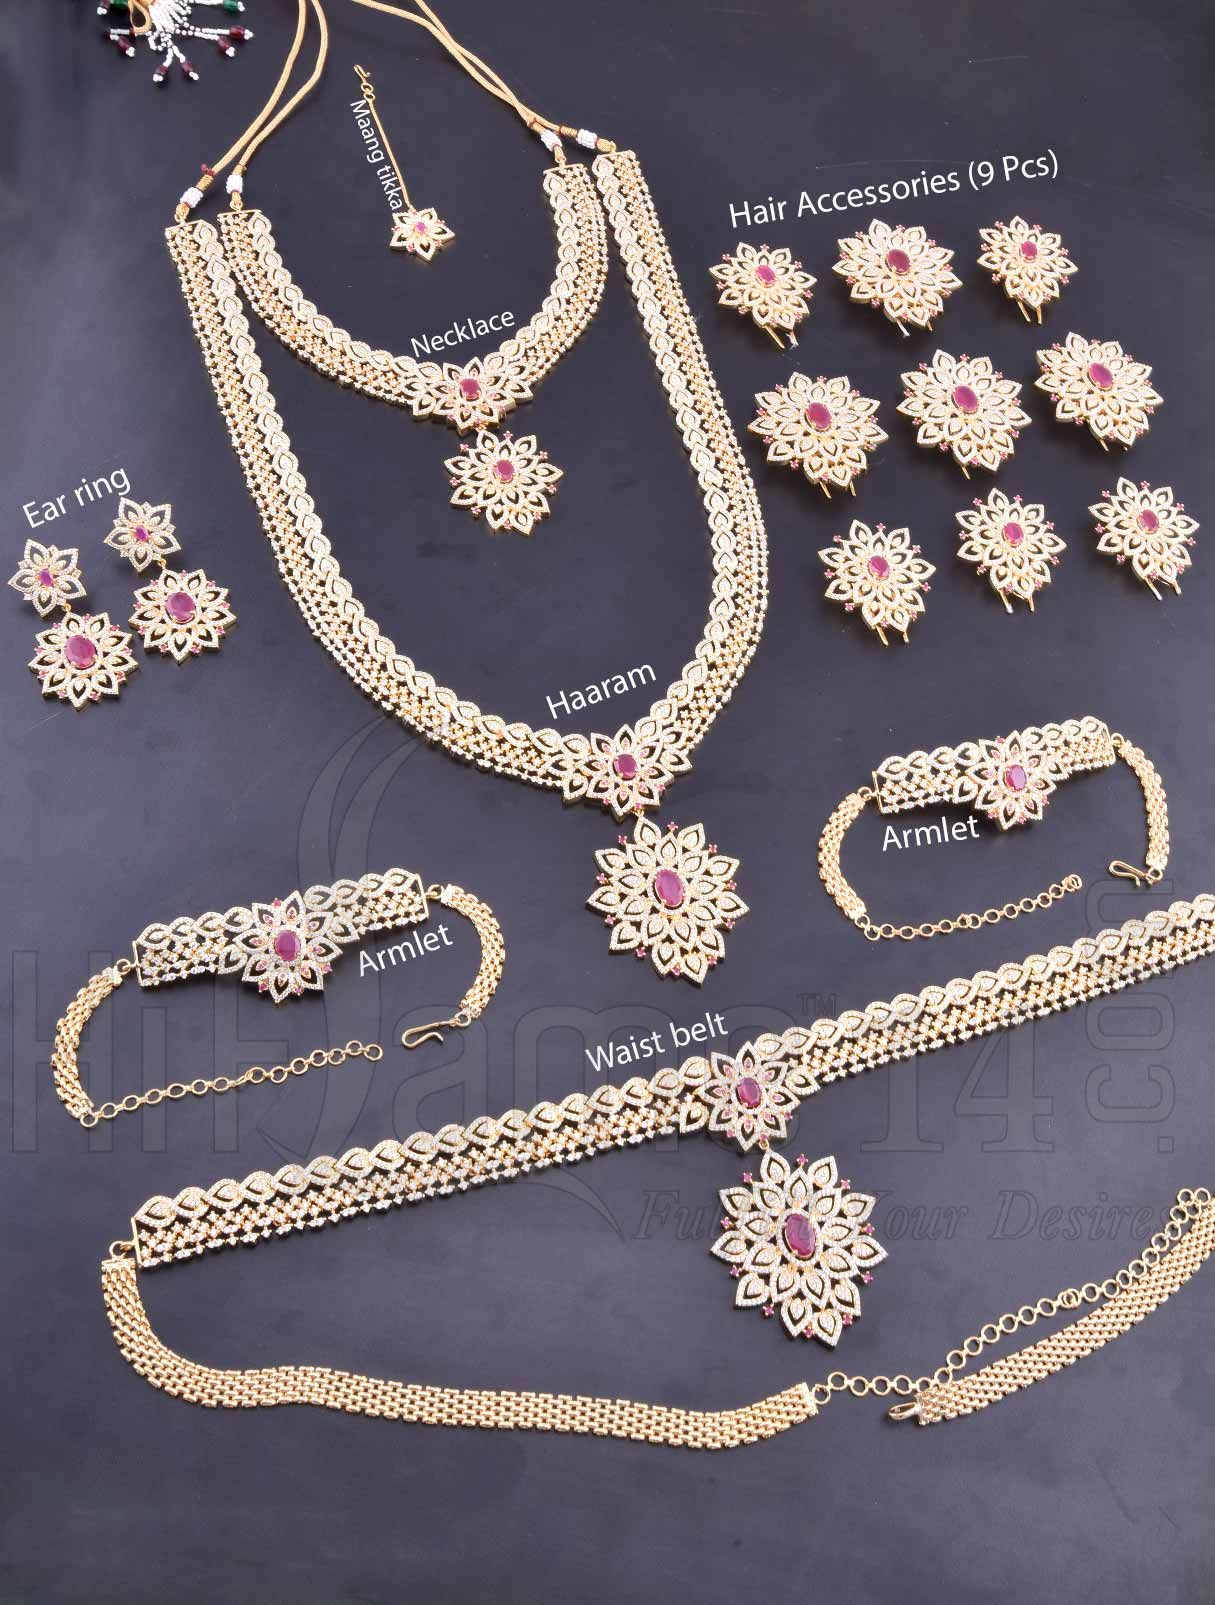 Rent Special Bridal Jewellery Sets For Wedding Occasions Bridal Jewelry Diamond Bridal Sets Bridal Jewelry Sets